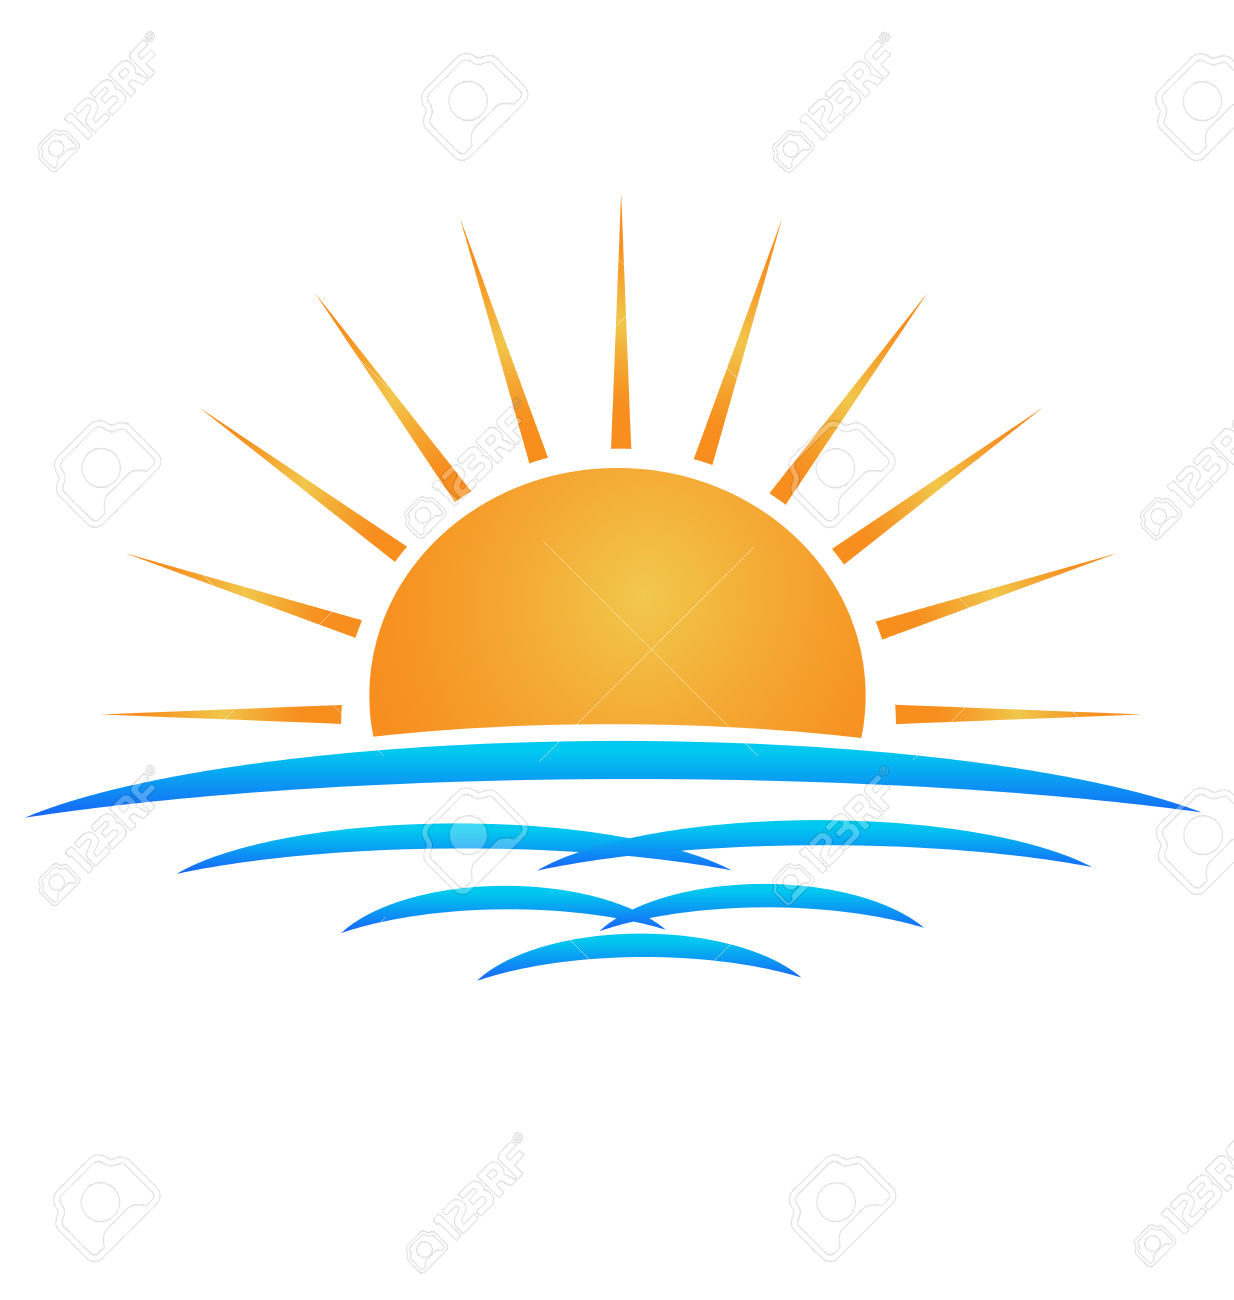 Collection of Sunlight clipart.